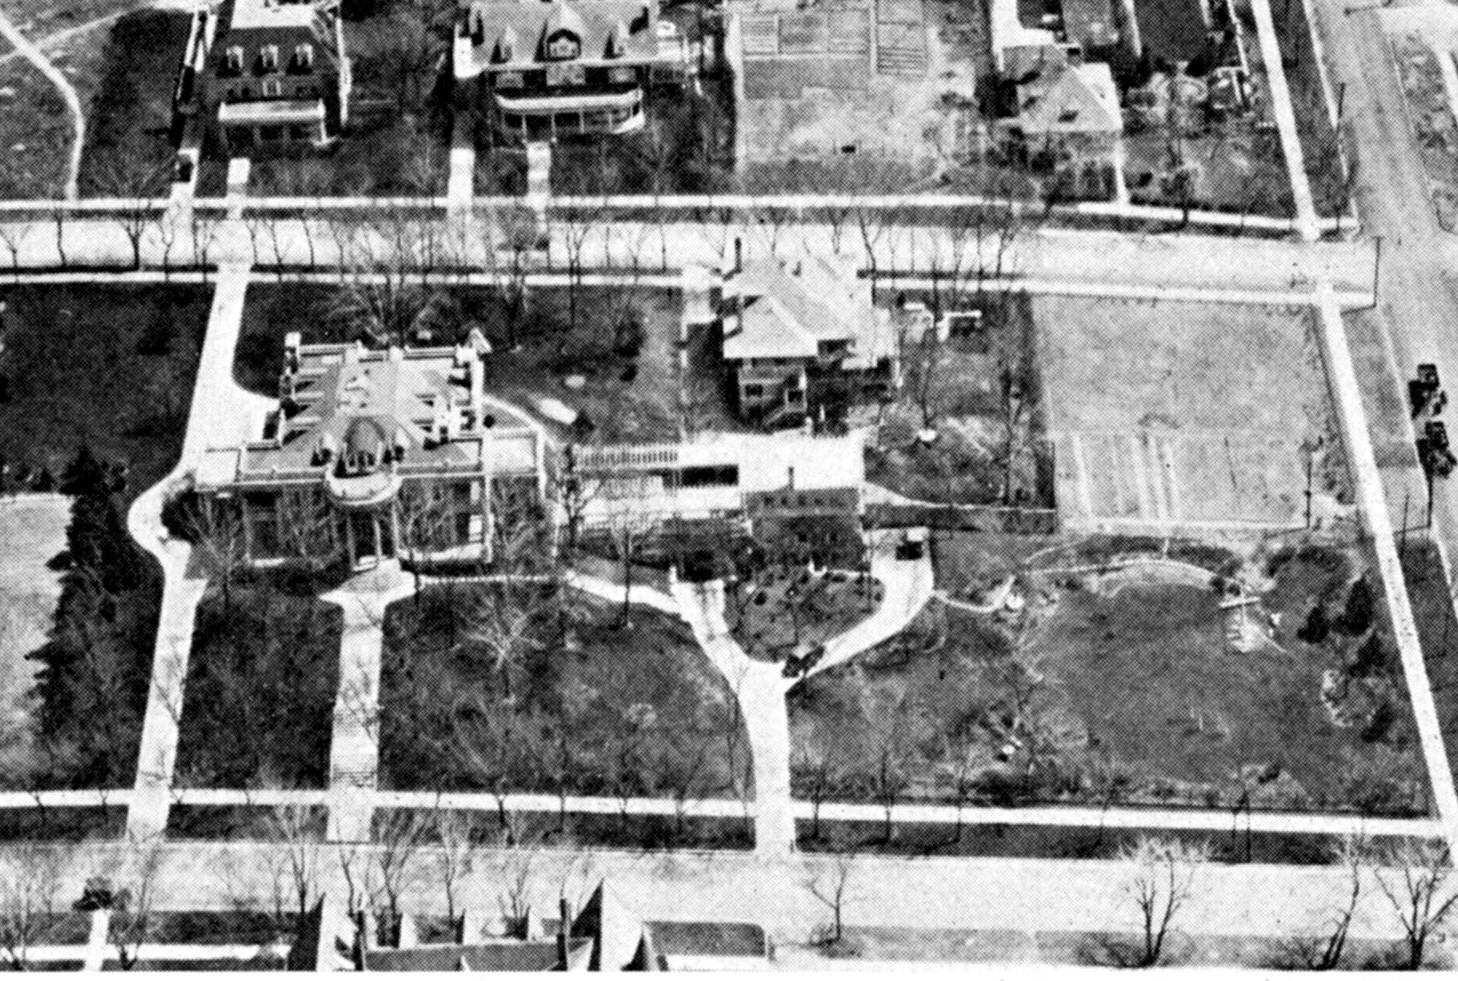 aerial view of Humphreys mansion